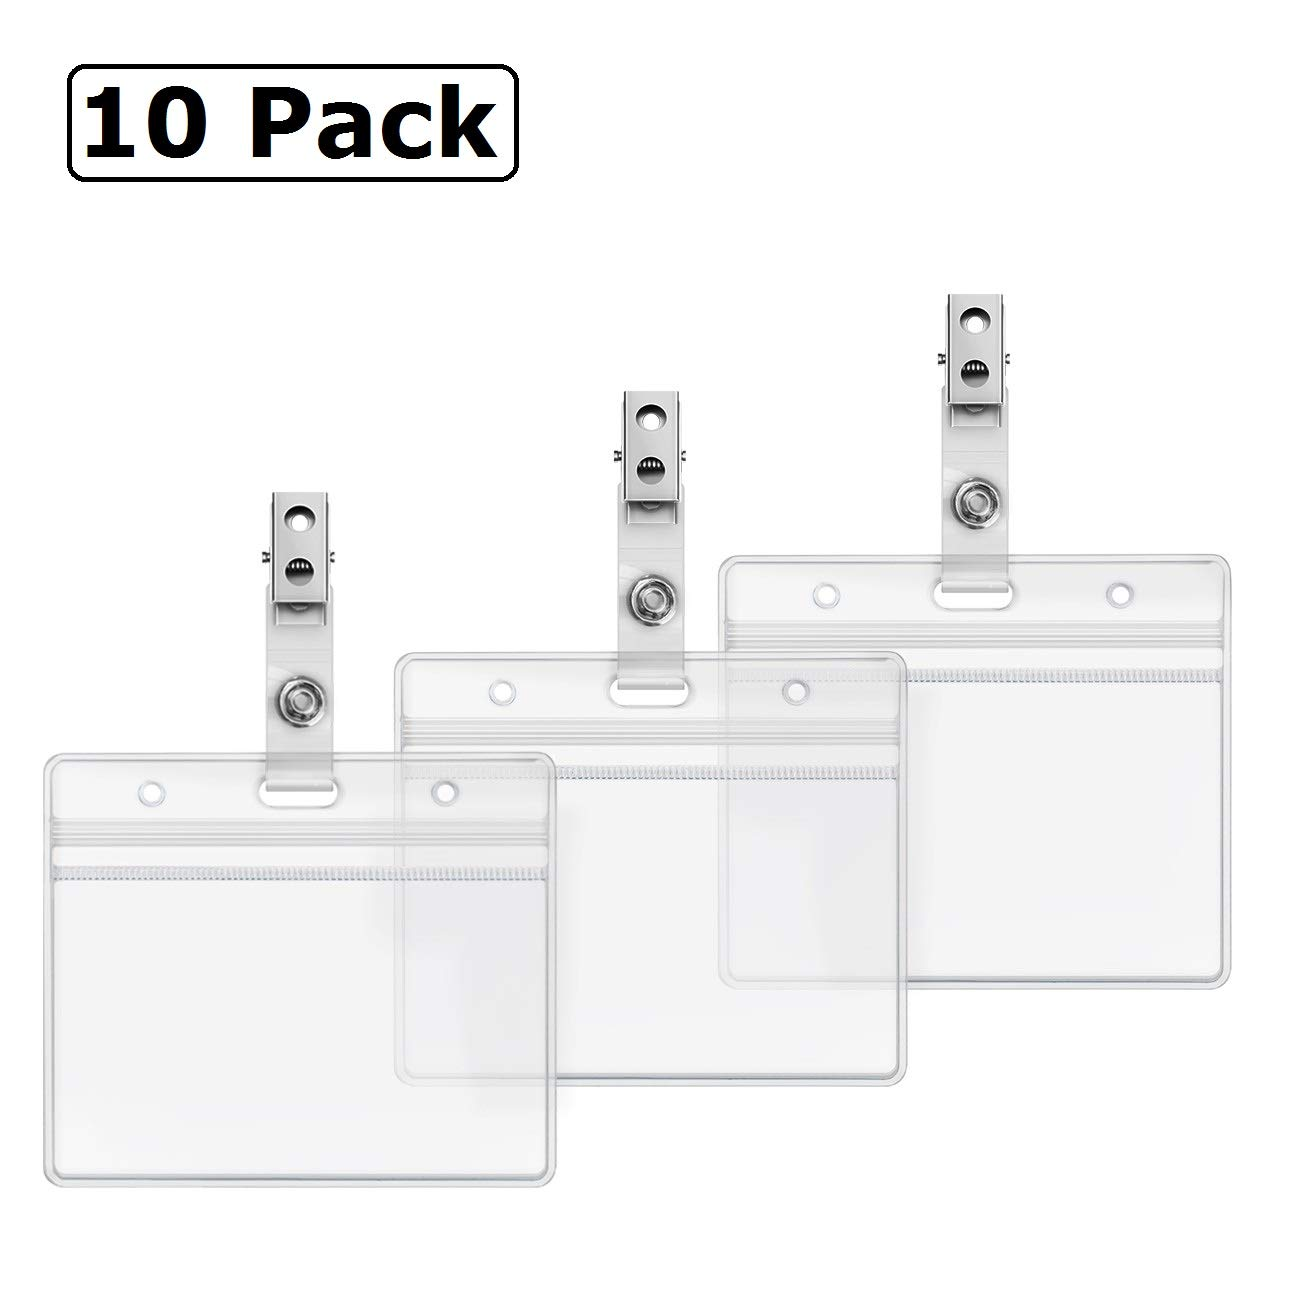 1e6e334eff36 Horizontal Heavy Duty Name Tags Badge Holders and Metal Badge Clips with  Vinyl Straps by ZHEGUI (10 Pack, Horizontal 2.3X3.5)